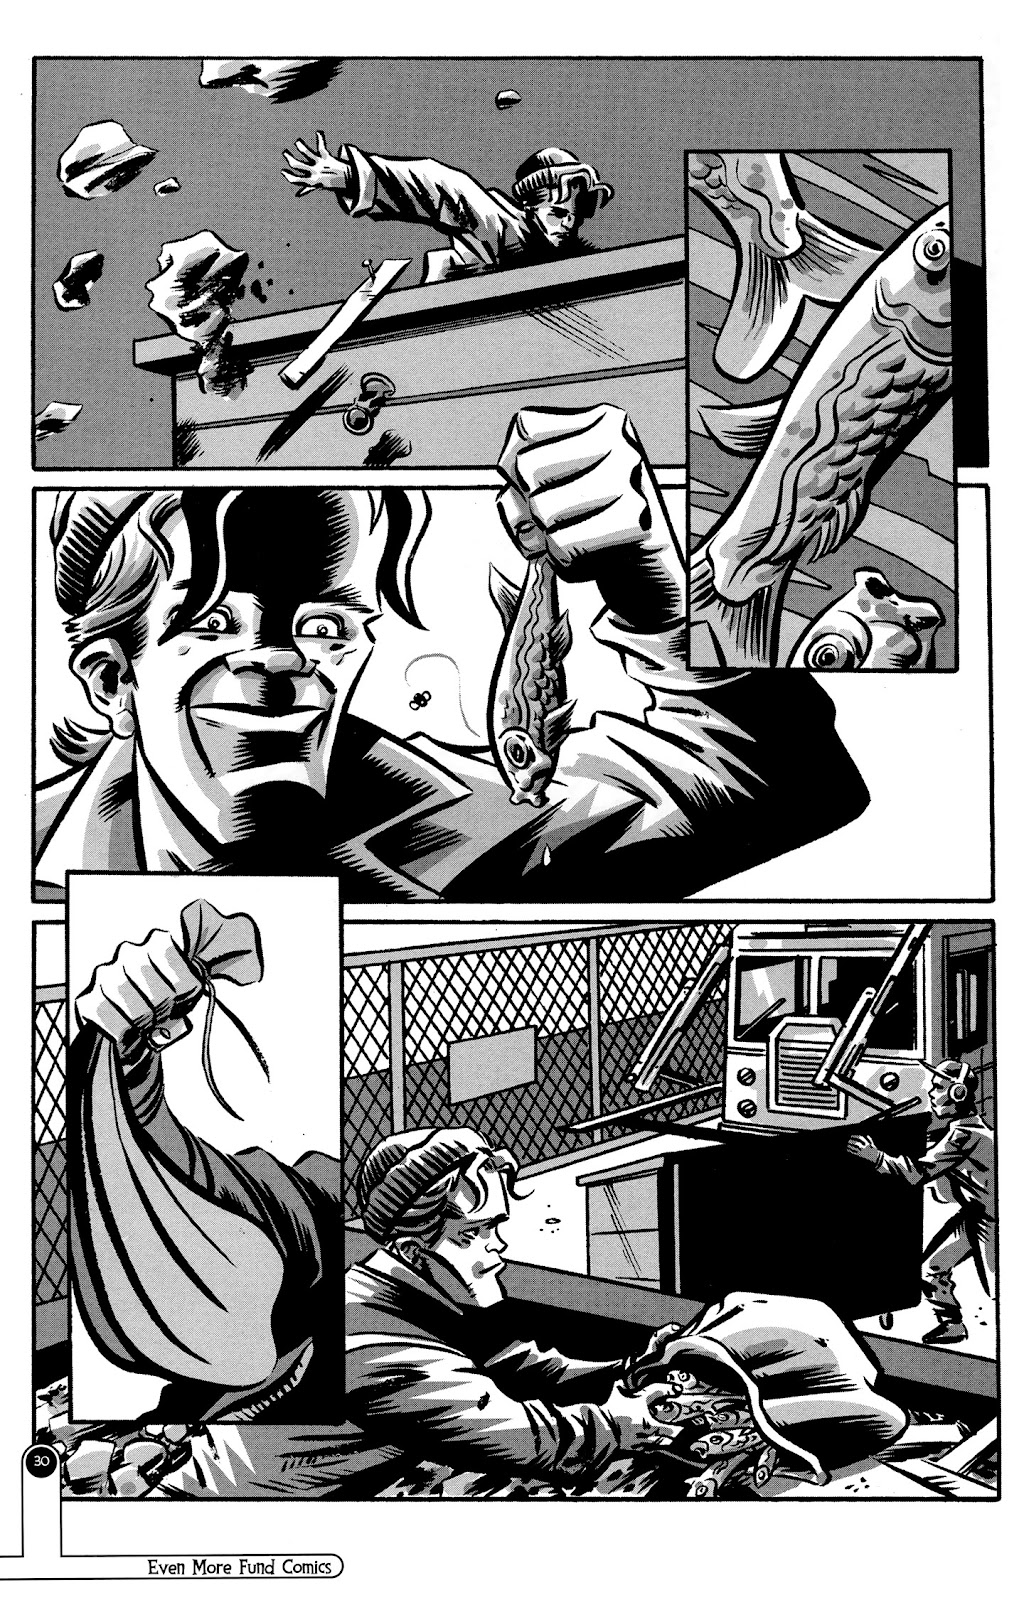 Read online Even More Fund Comics comic -  Issue # TPB (Part 1) - 30